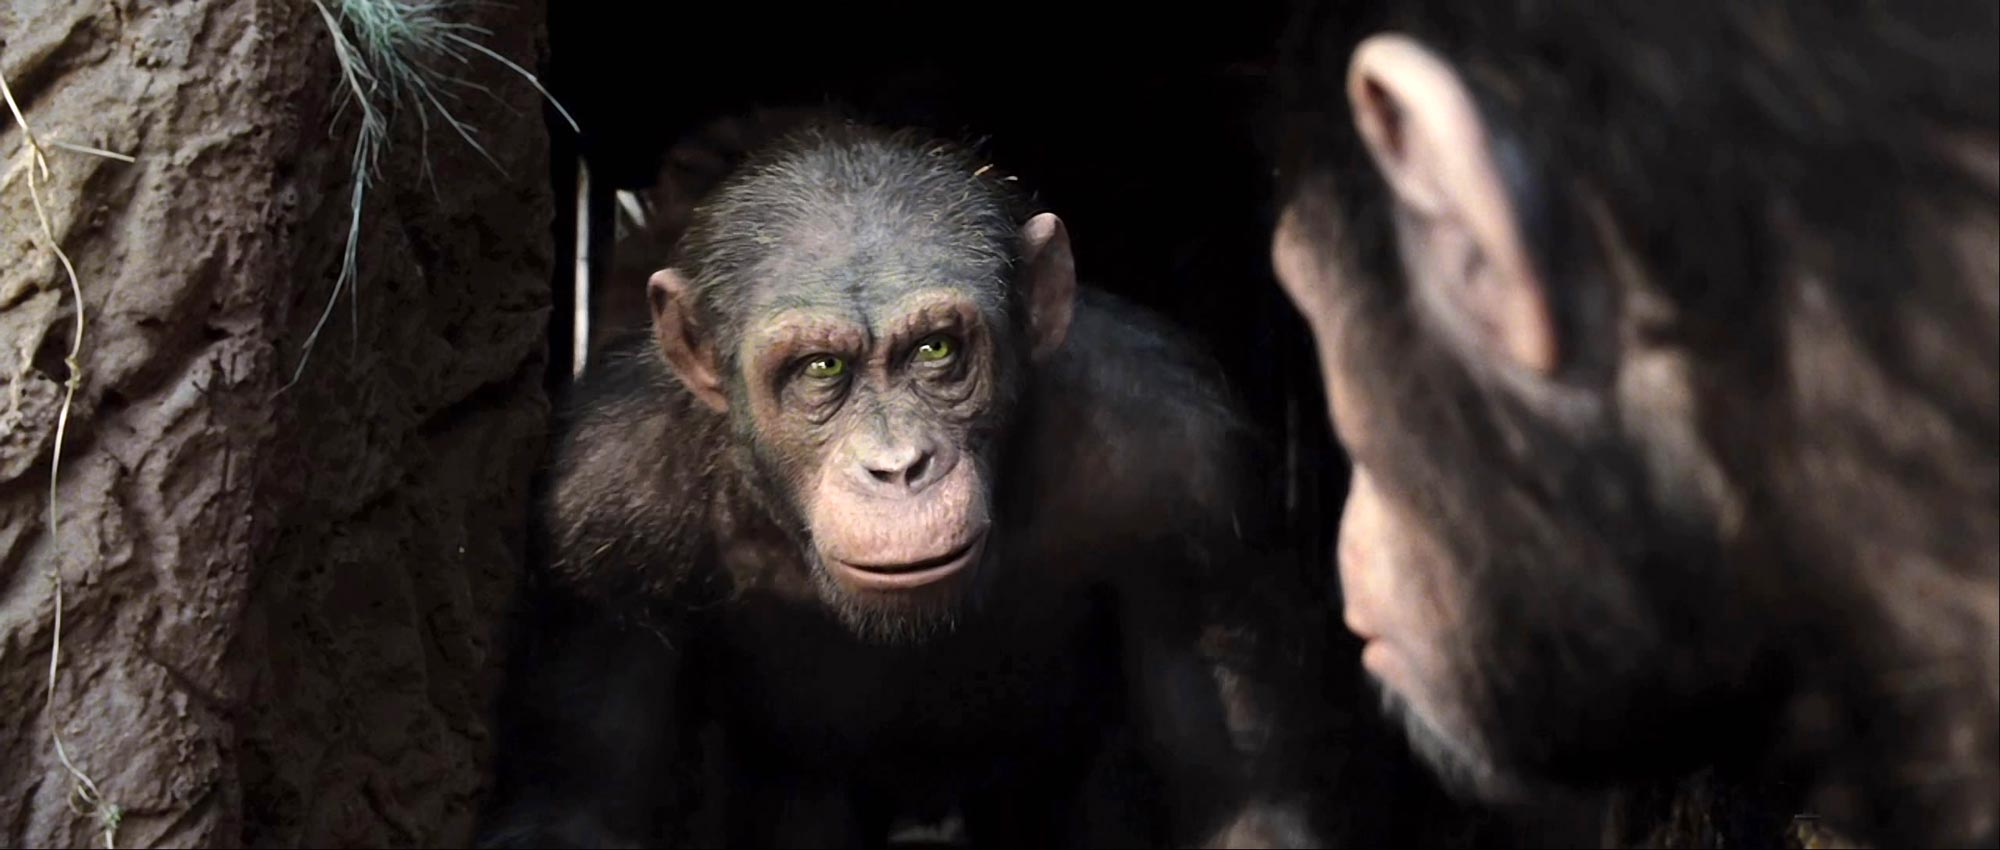 rise of the planet of the apes 2011-08-11  the prequel to the charlton heston classic may not be quite so brilliant as its predecessor, but is still a cheerfully entertaining satire, writes peter bradshaw.